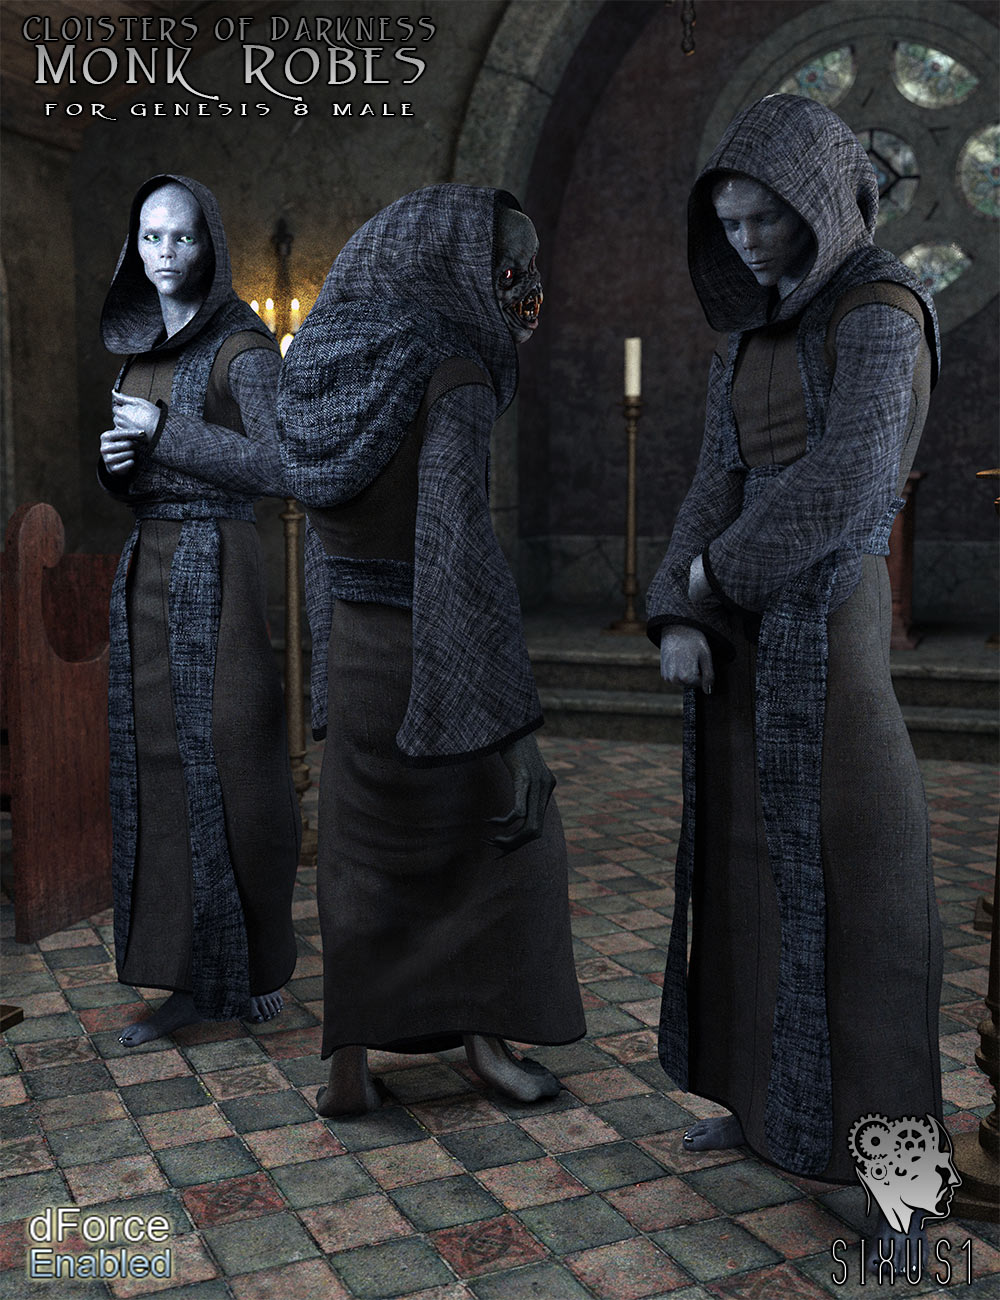 Cloisters of Darkness: Monk Robes for Genesis 8 Male